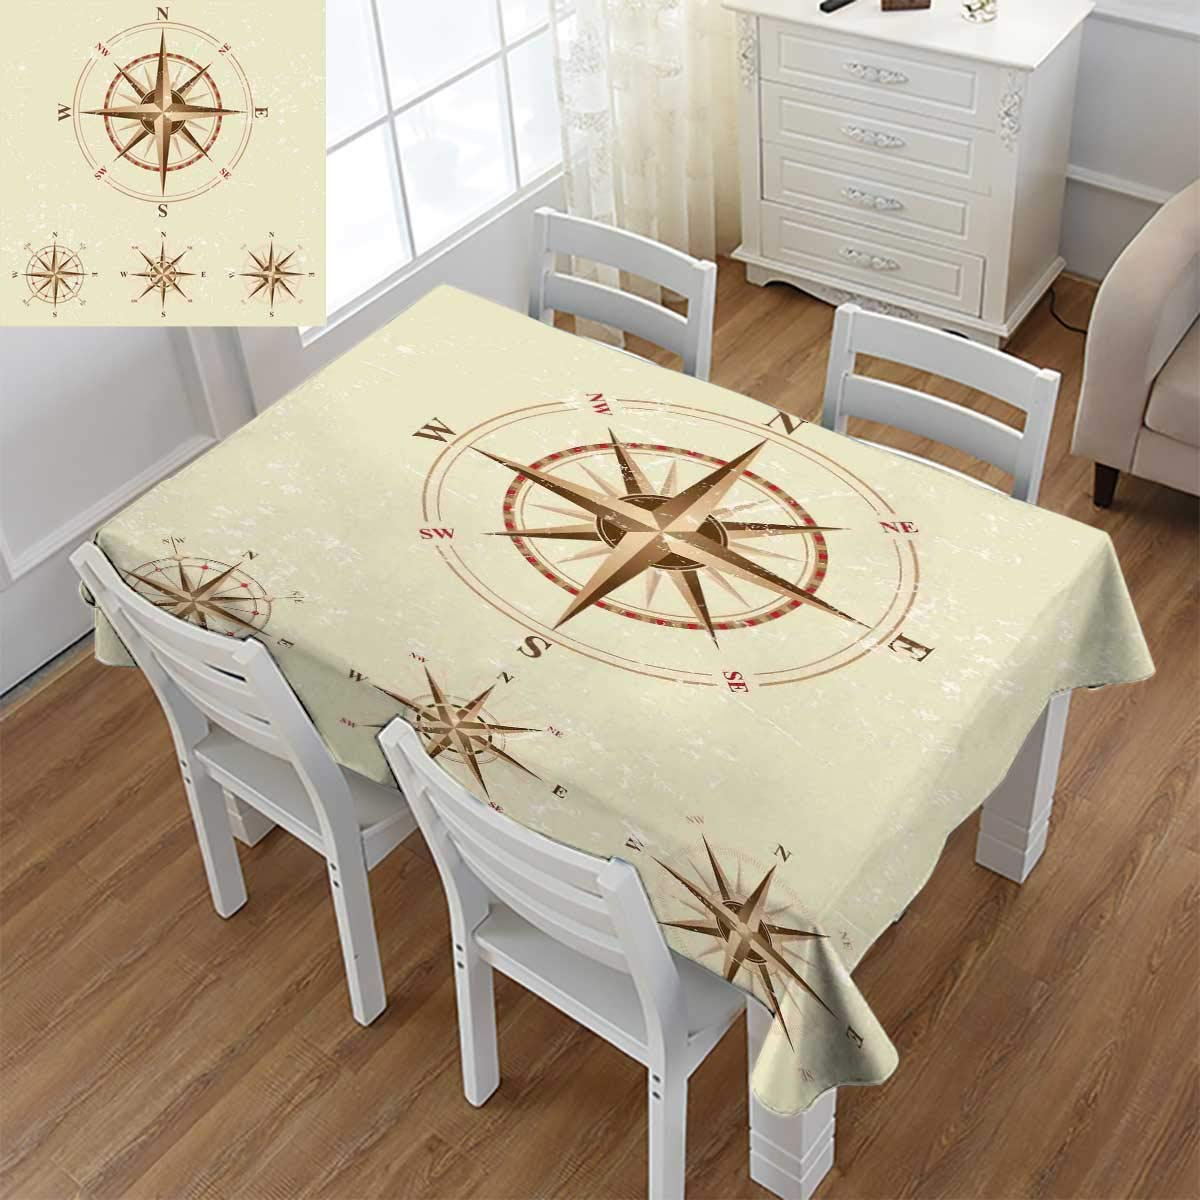 Angoueleven Compass,Dinner Picnic Table Cloth,Four Different Compasses in Retro Colors Discovery Equipment Where Nautical Marine,Waterproof Table Cover for Kitchen,Beige Tan,Size:60''x84''